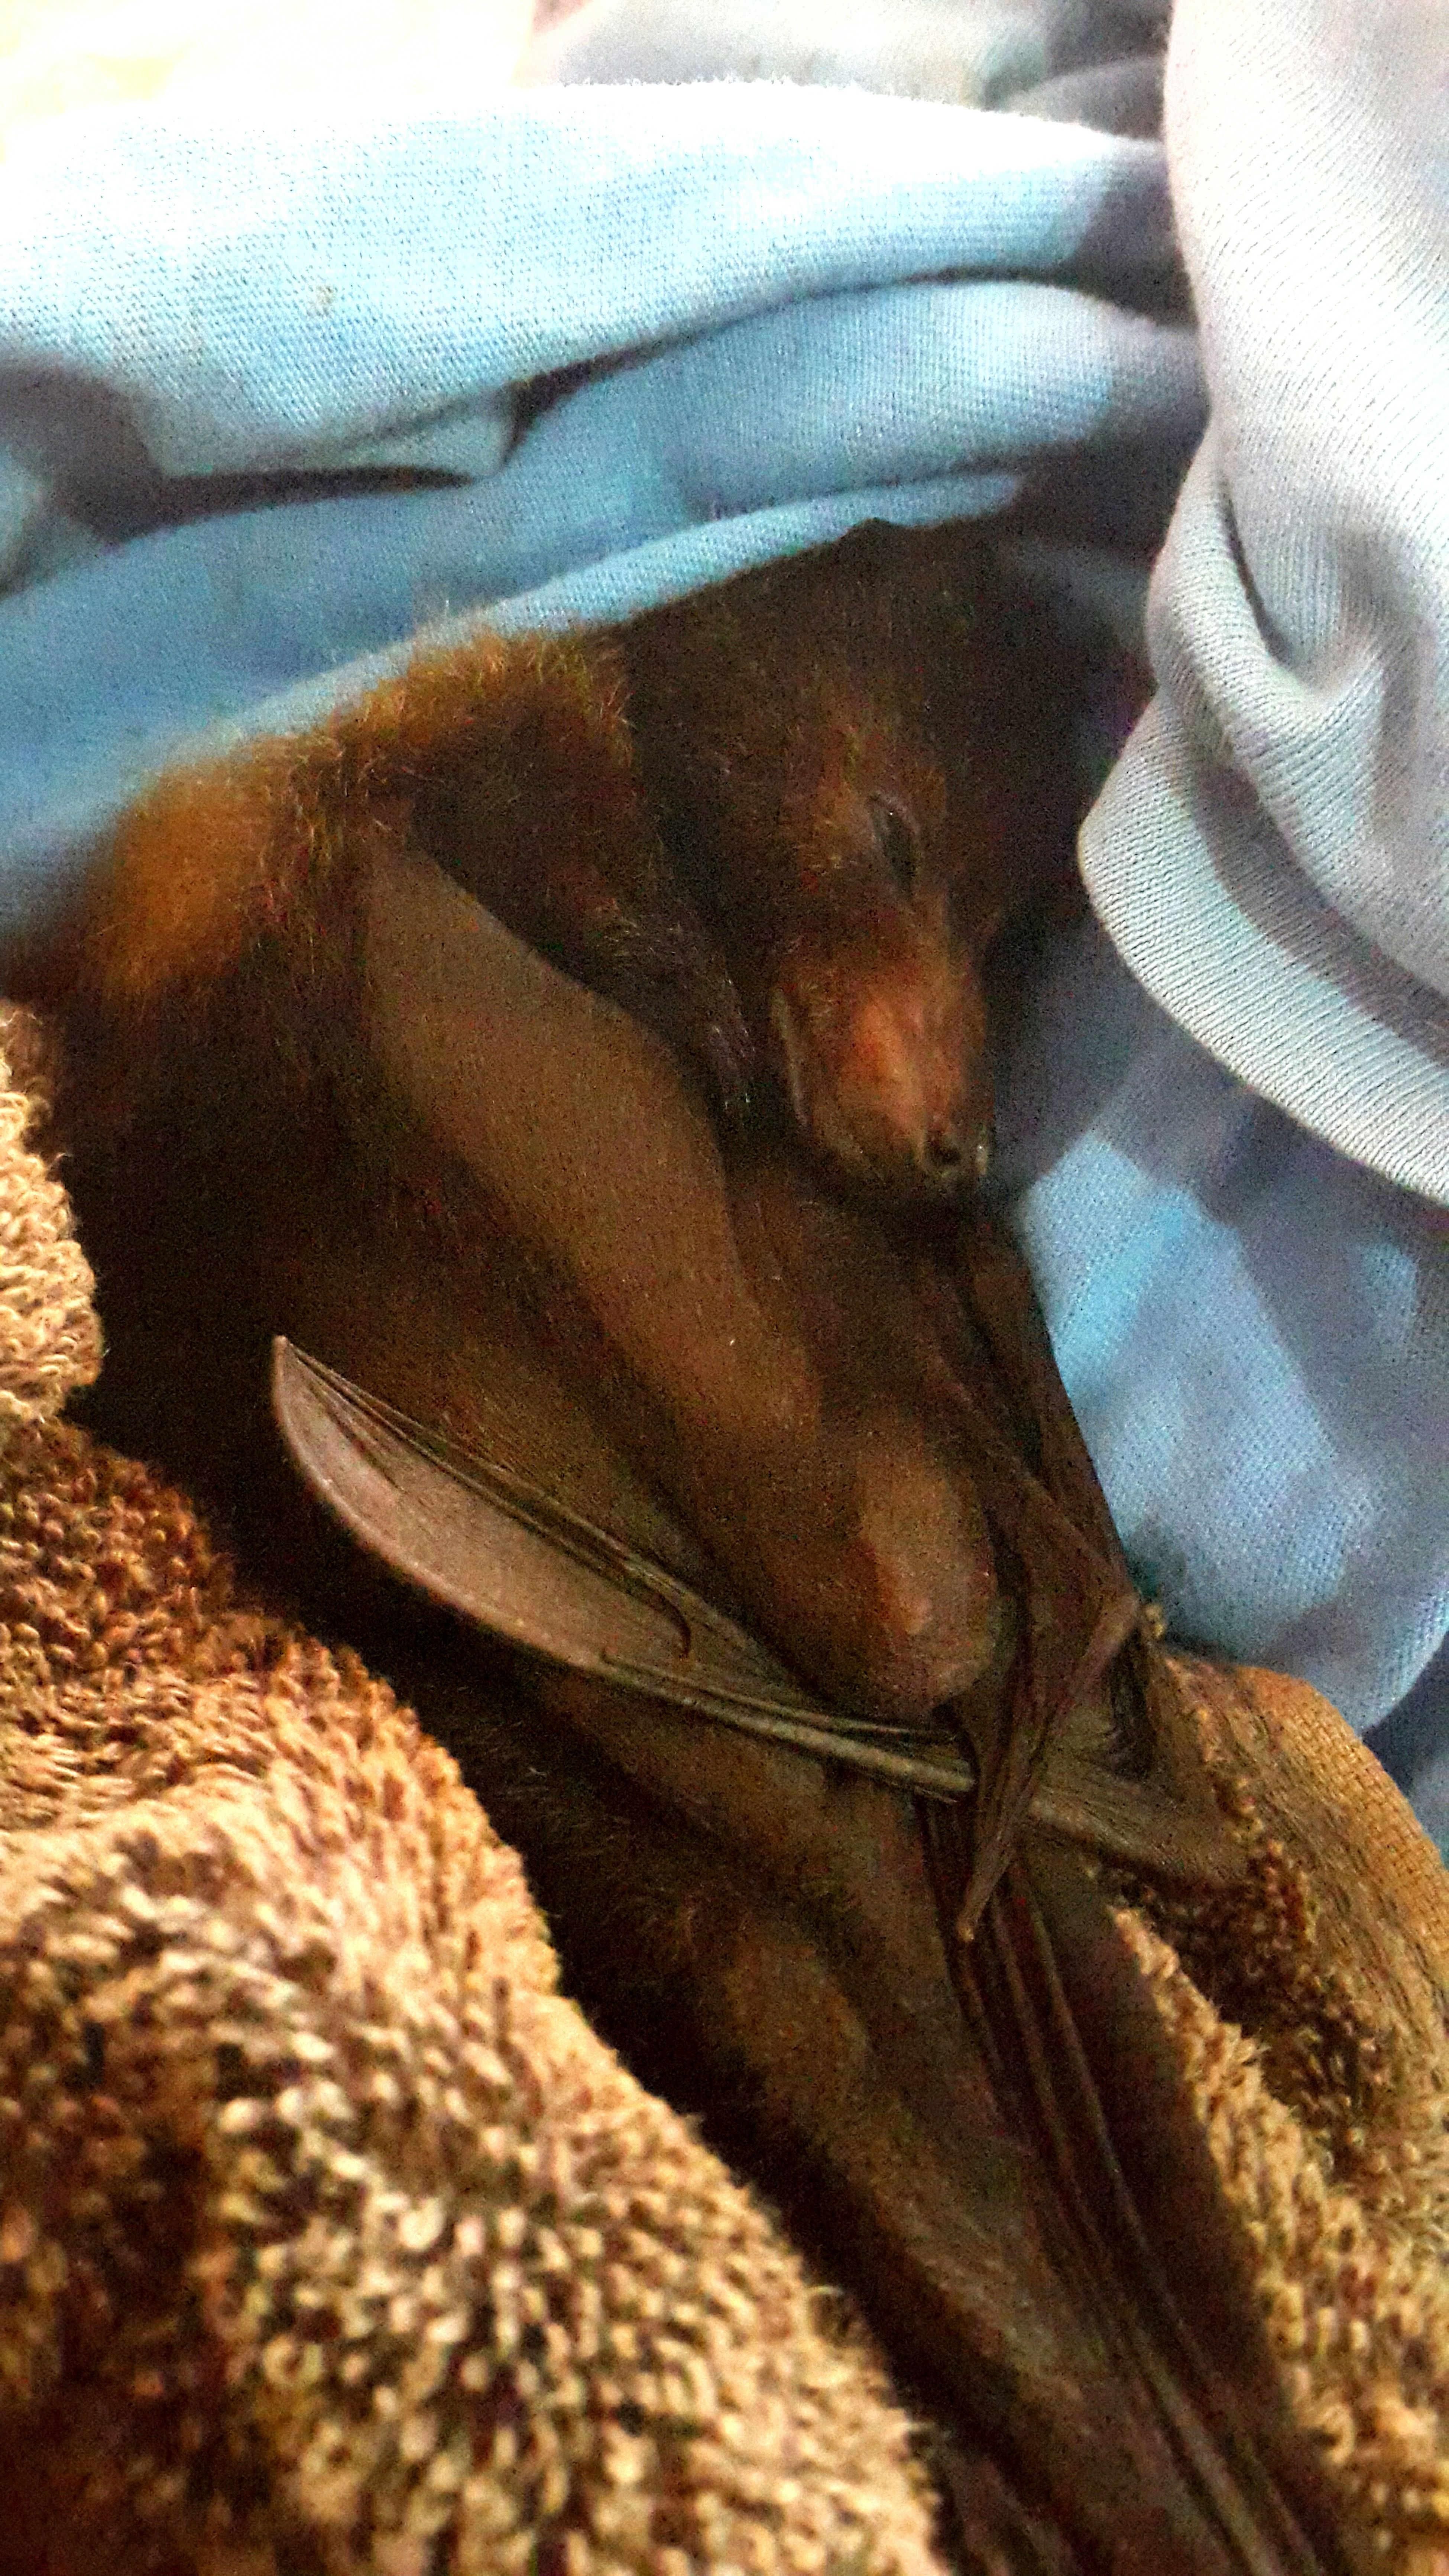 Fruit Bat Island Life Handraised Natural Heritage Fiji Islands Taveuni Island Wildlife Nature On Your Doorstep